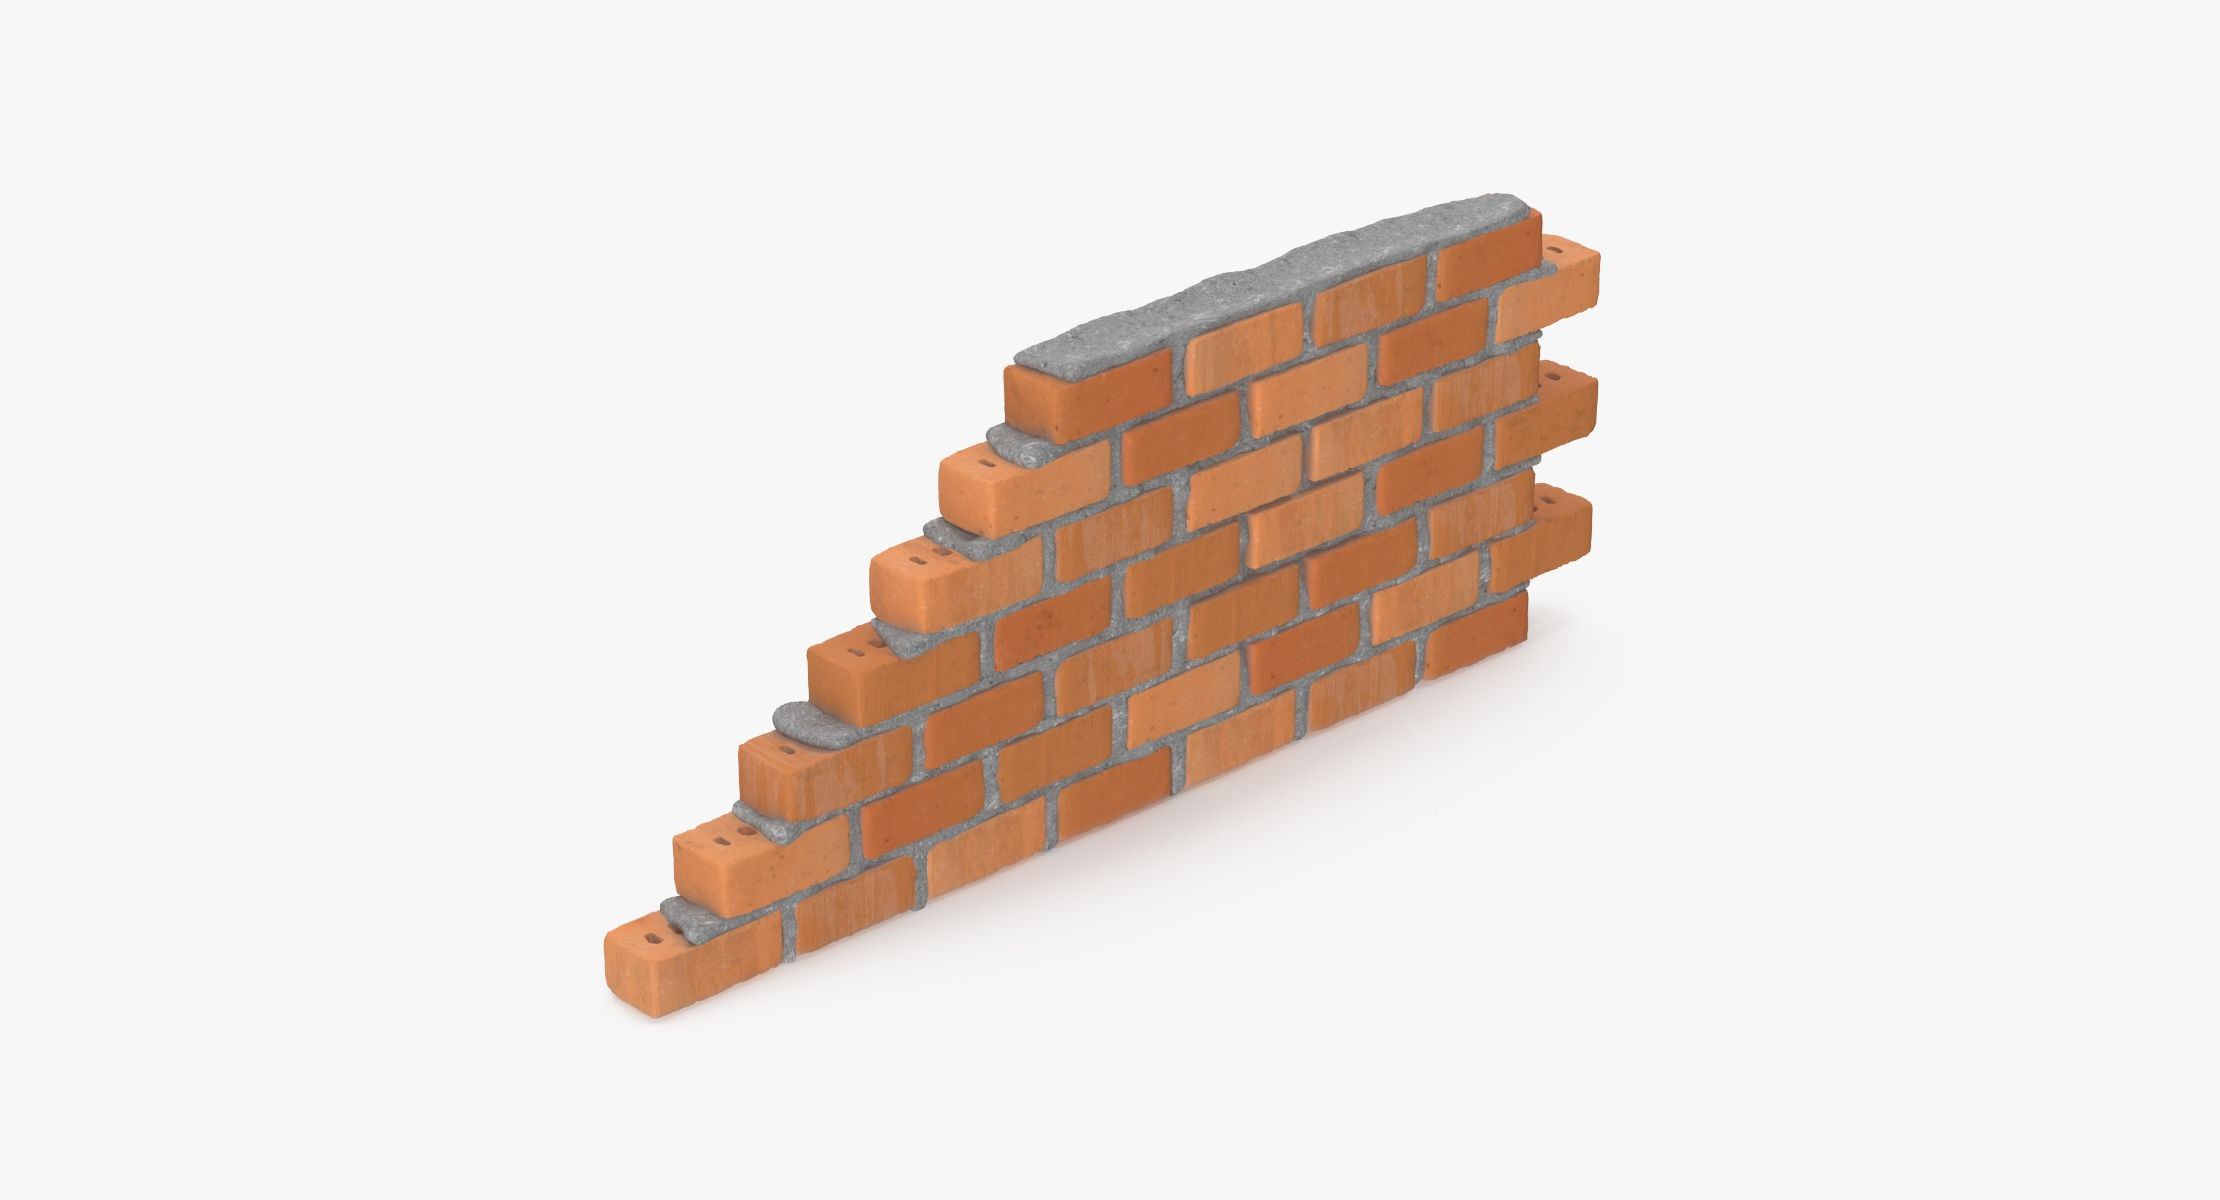 Brick Wall Section 01 - reel 1